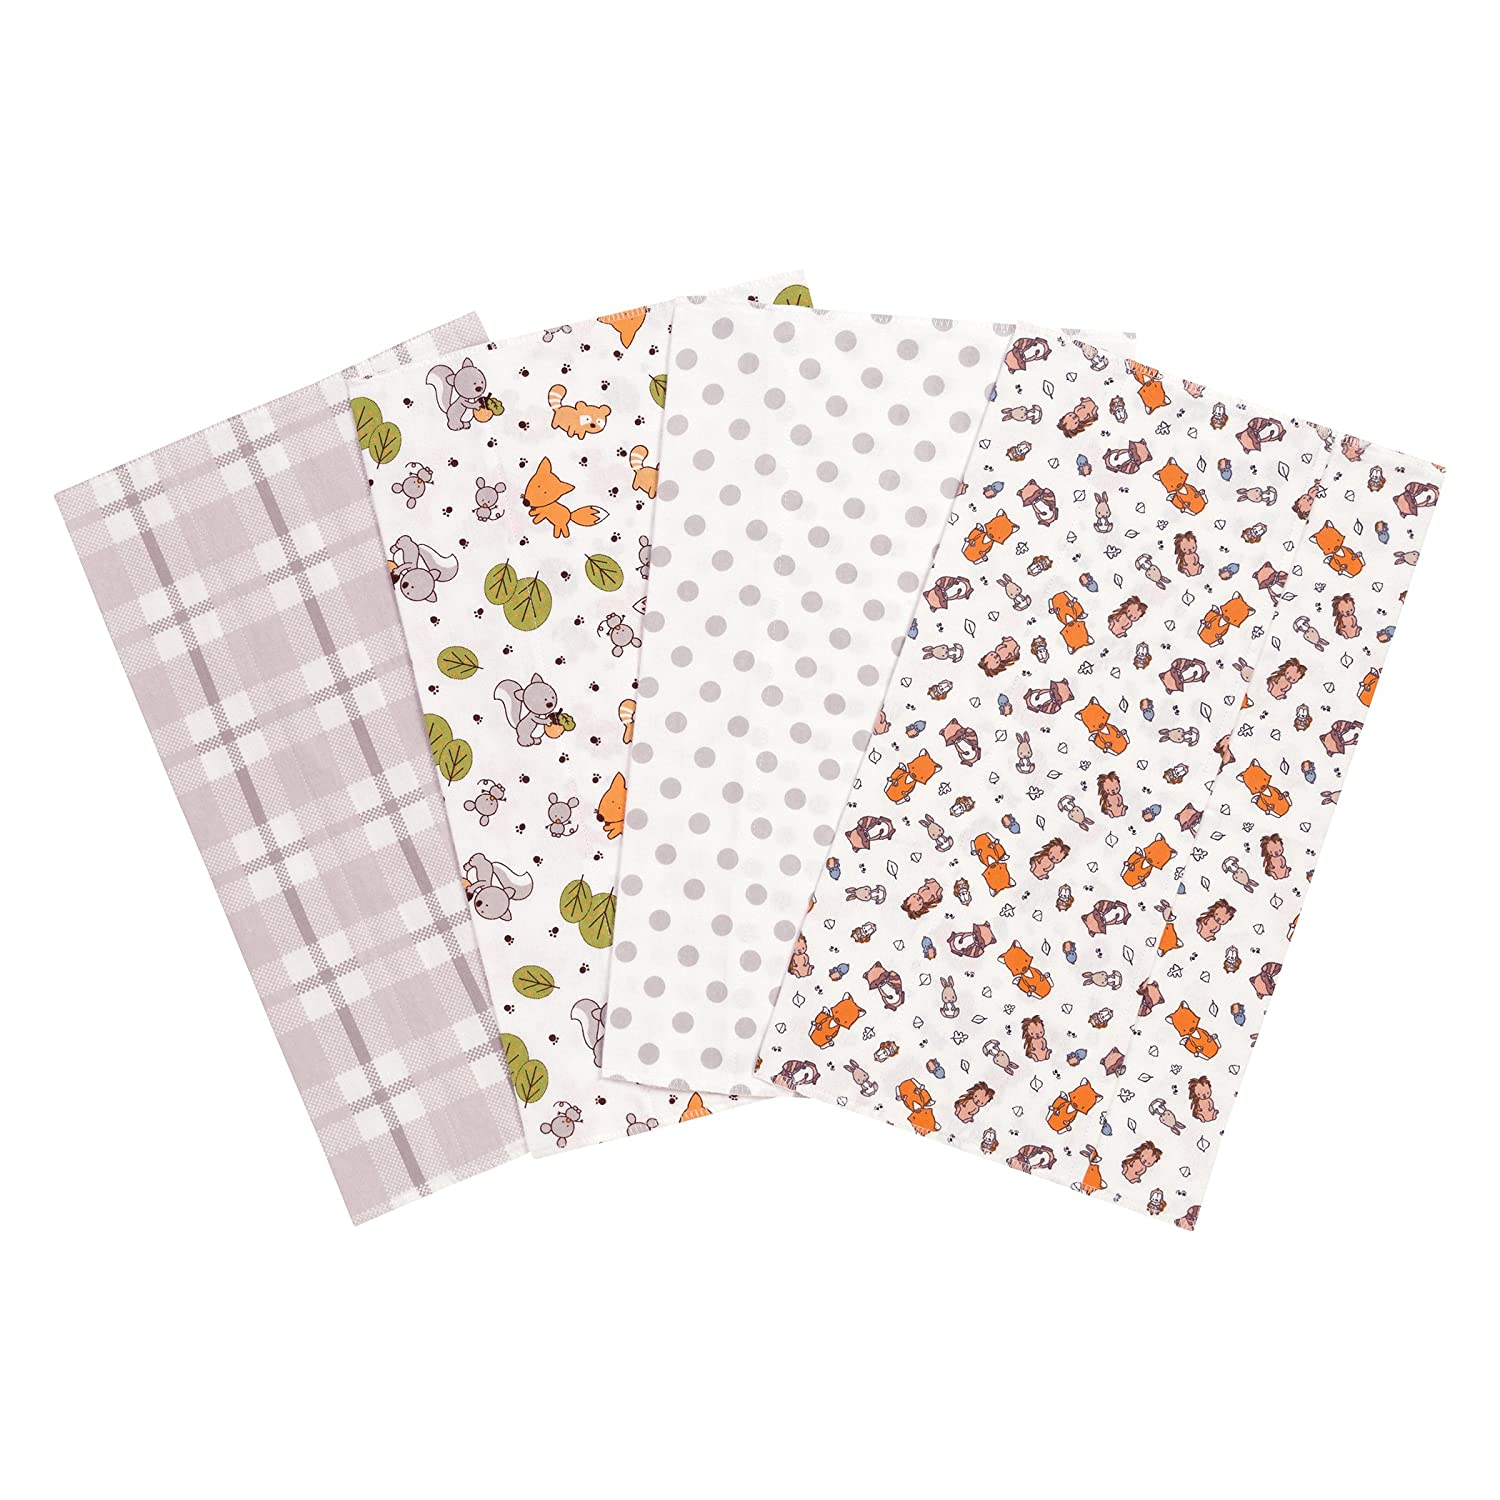 Trend Lab Wild Bunch Flannel Burp Cloth Set, 4 Piece 103203